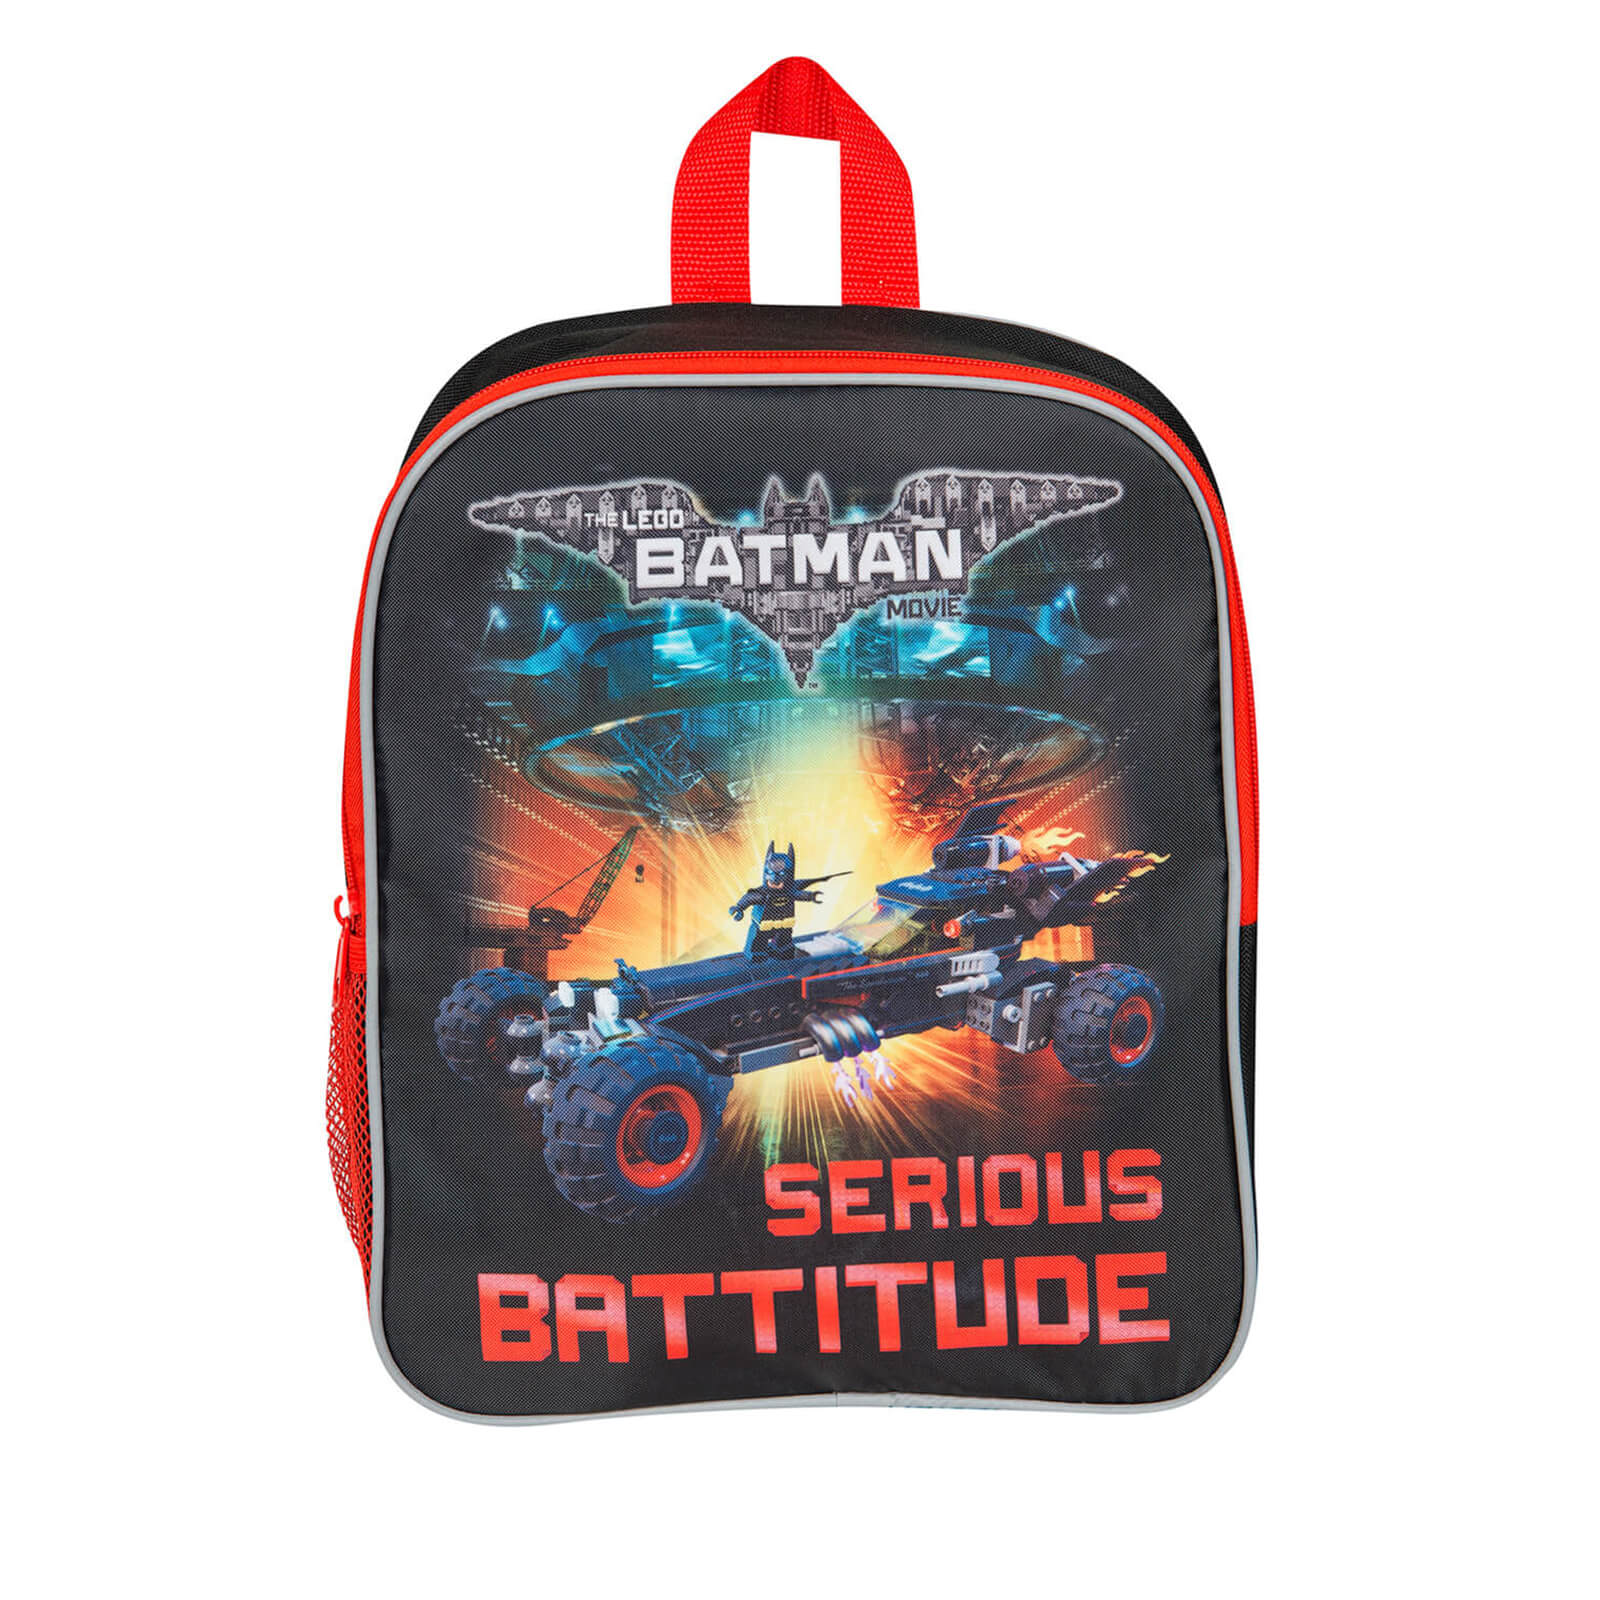 Lego Batman Backpack - Red